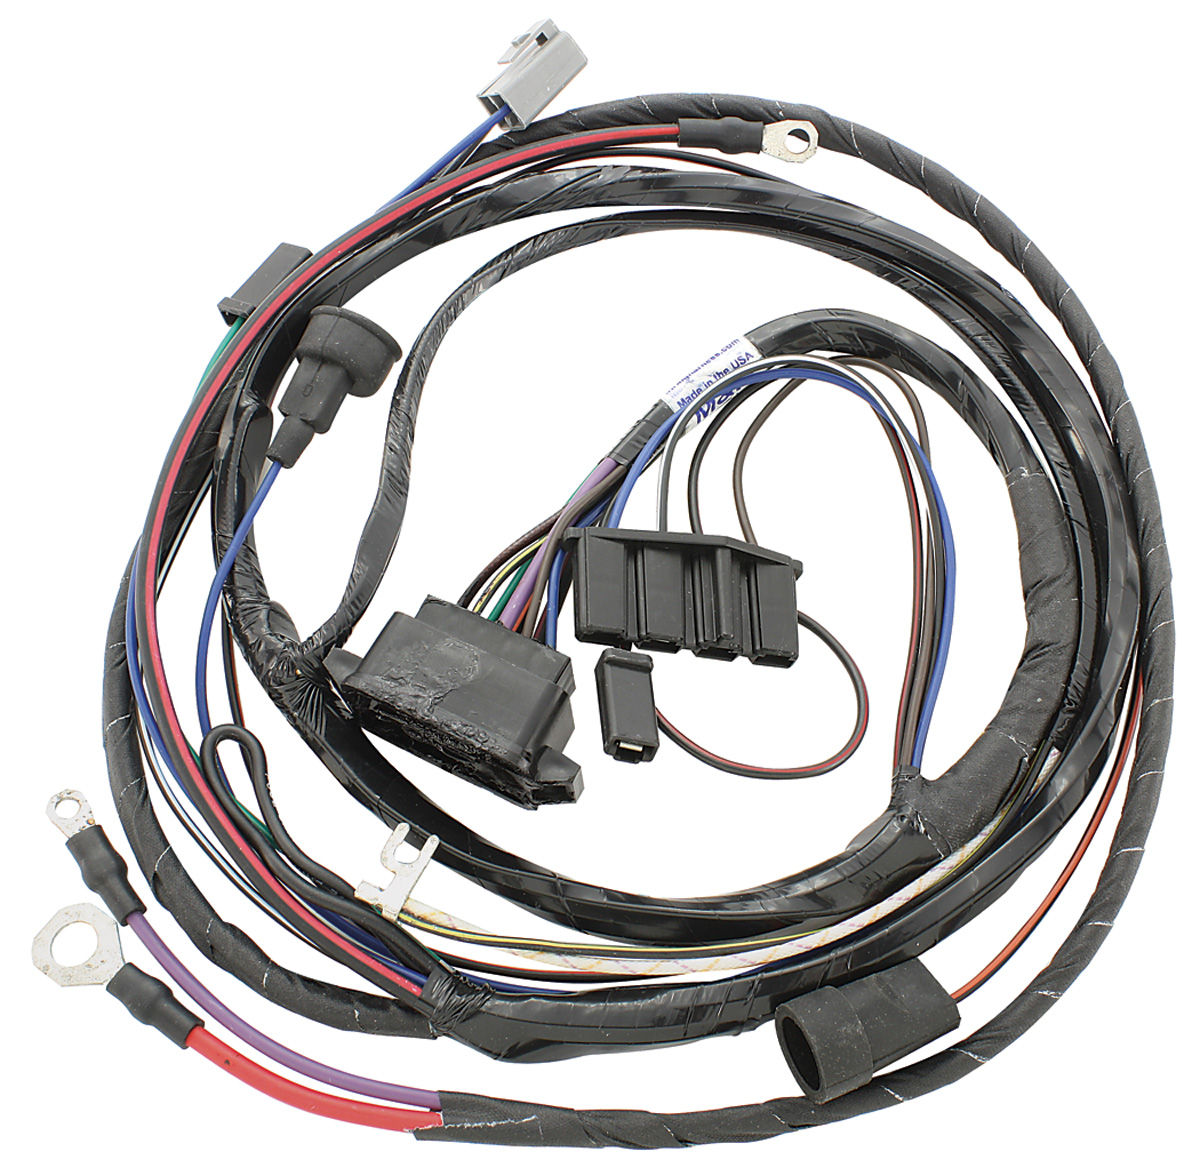 1966 pontiac gto wiring harness trusted wiring diagram u2022 rh soulmatestyle co